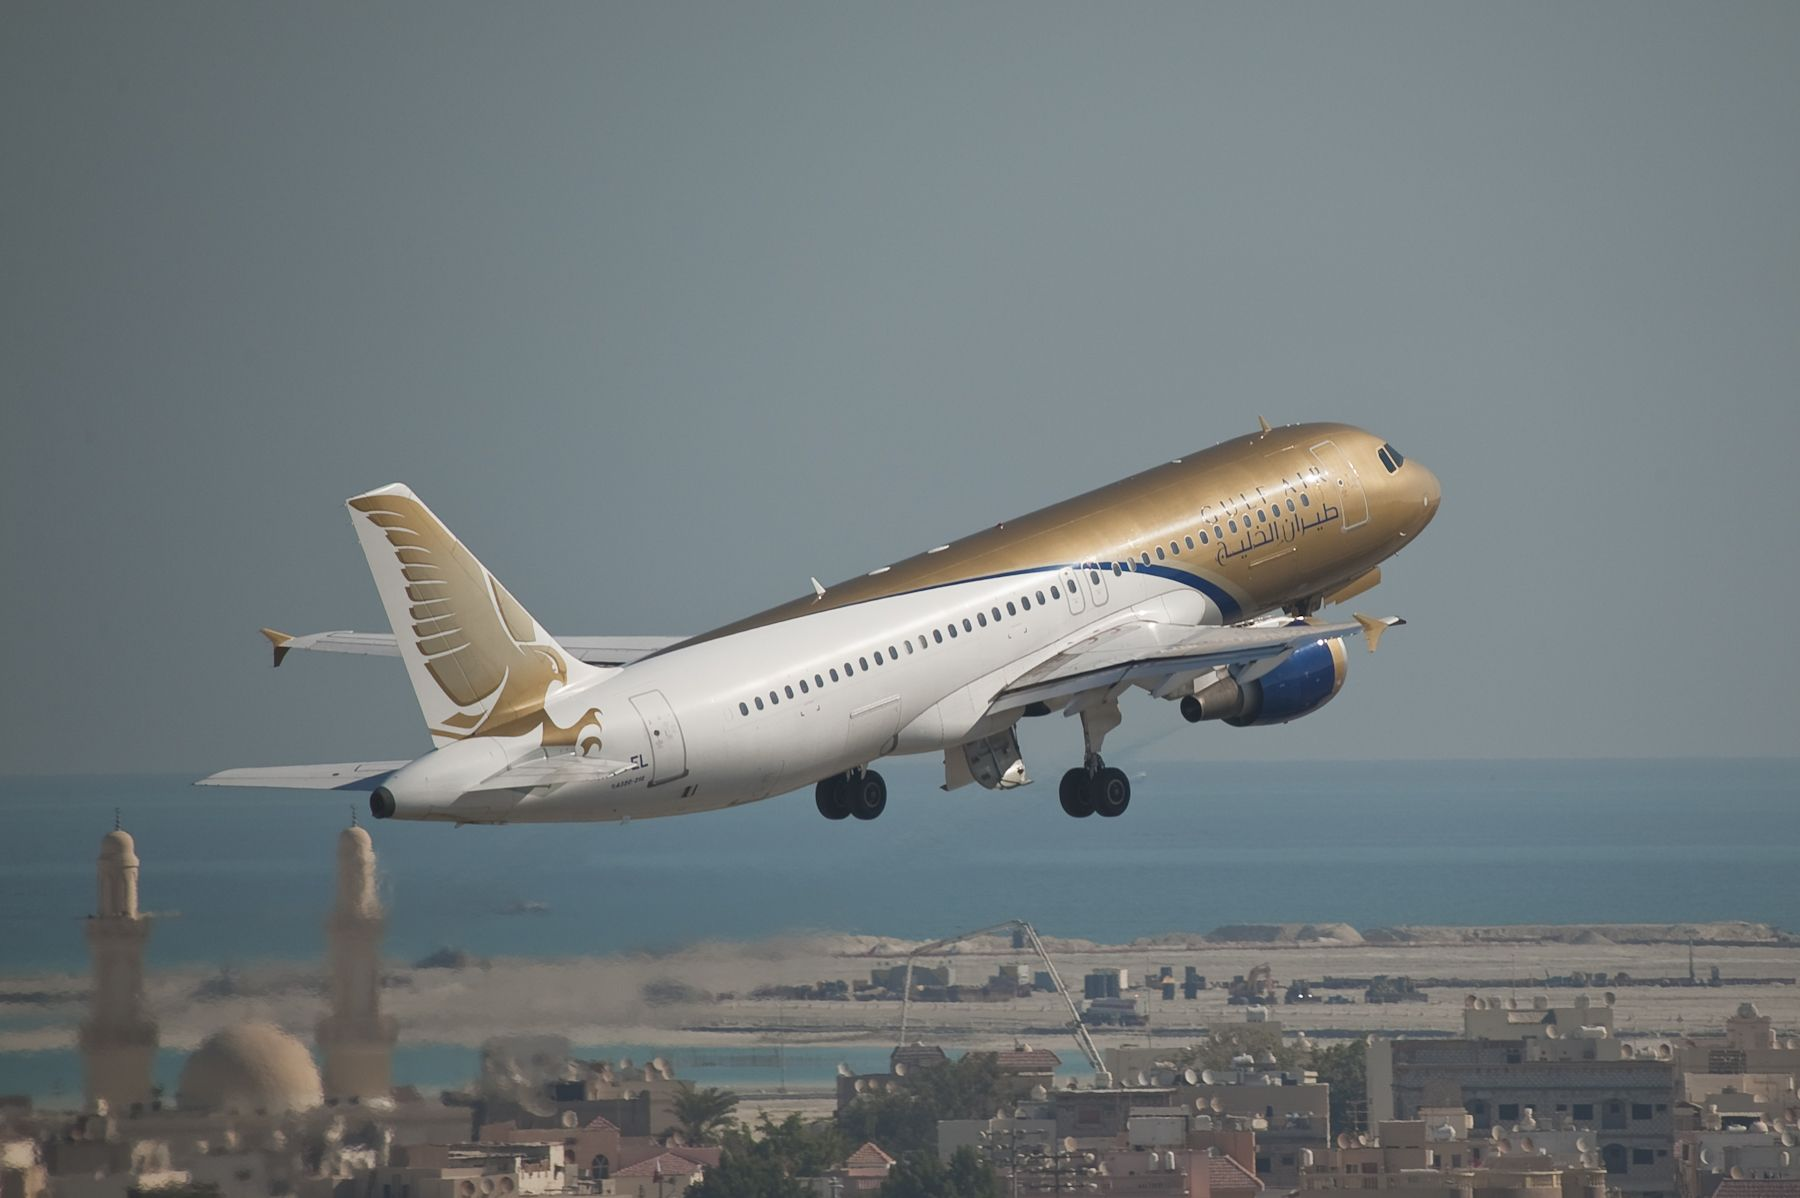 Pin by Gold Star Aviation on Gulf Air Larnaca, Air